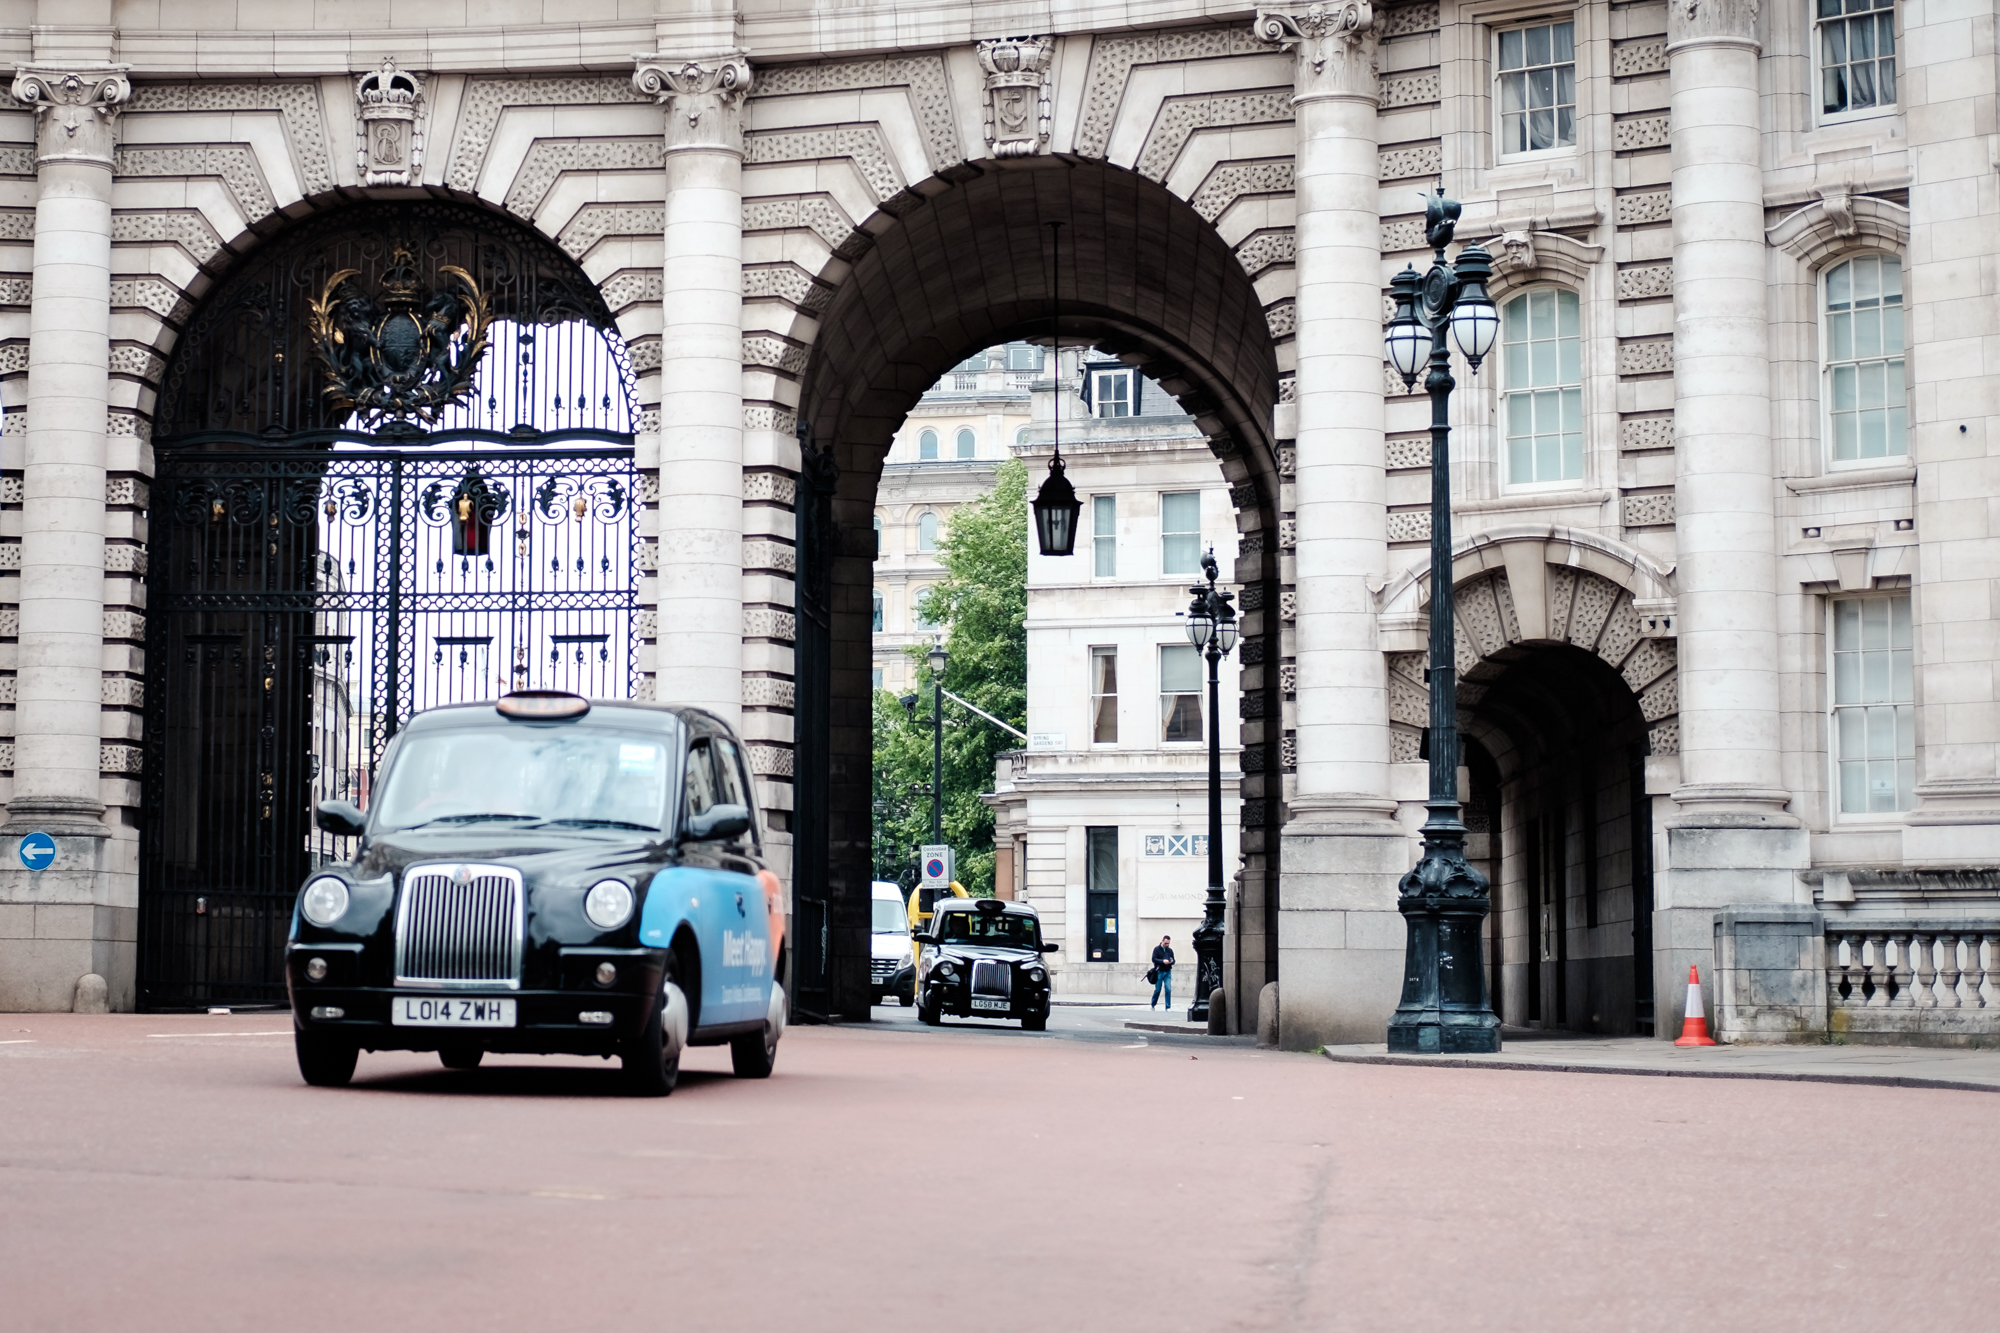 Photo of a black cab in London by Trevor Sherwin